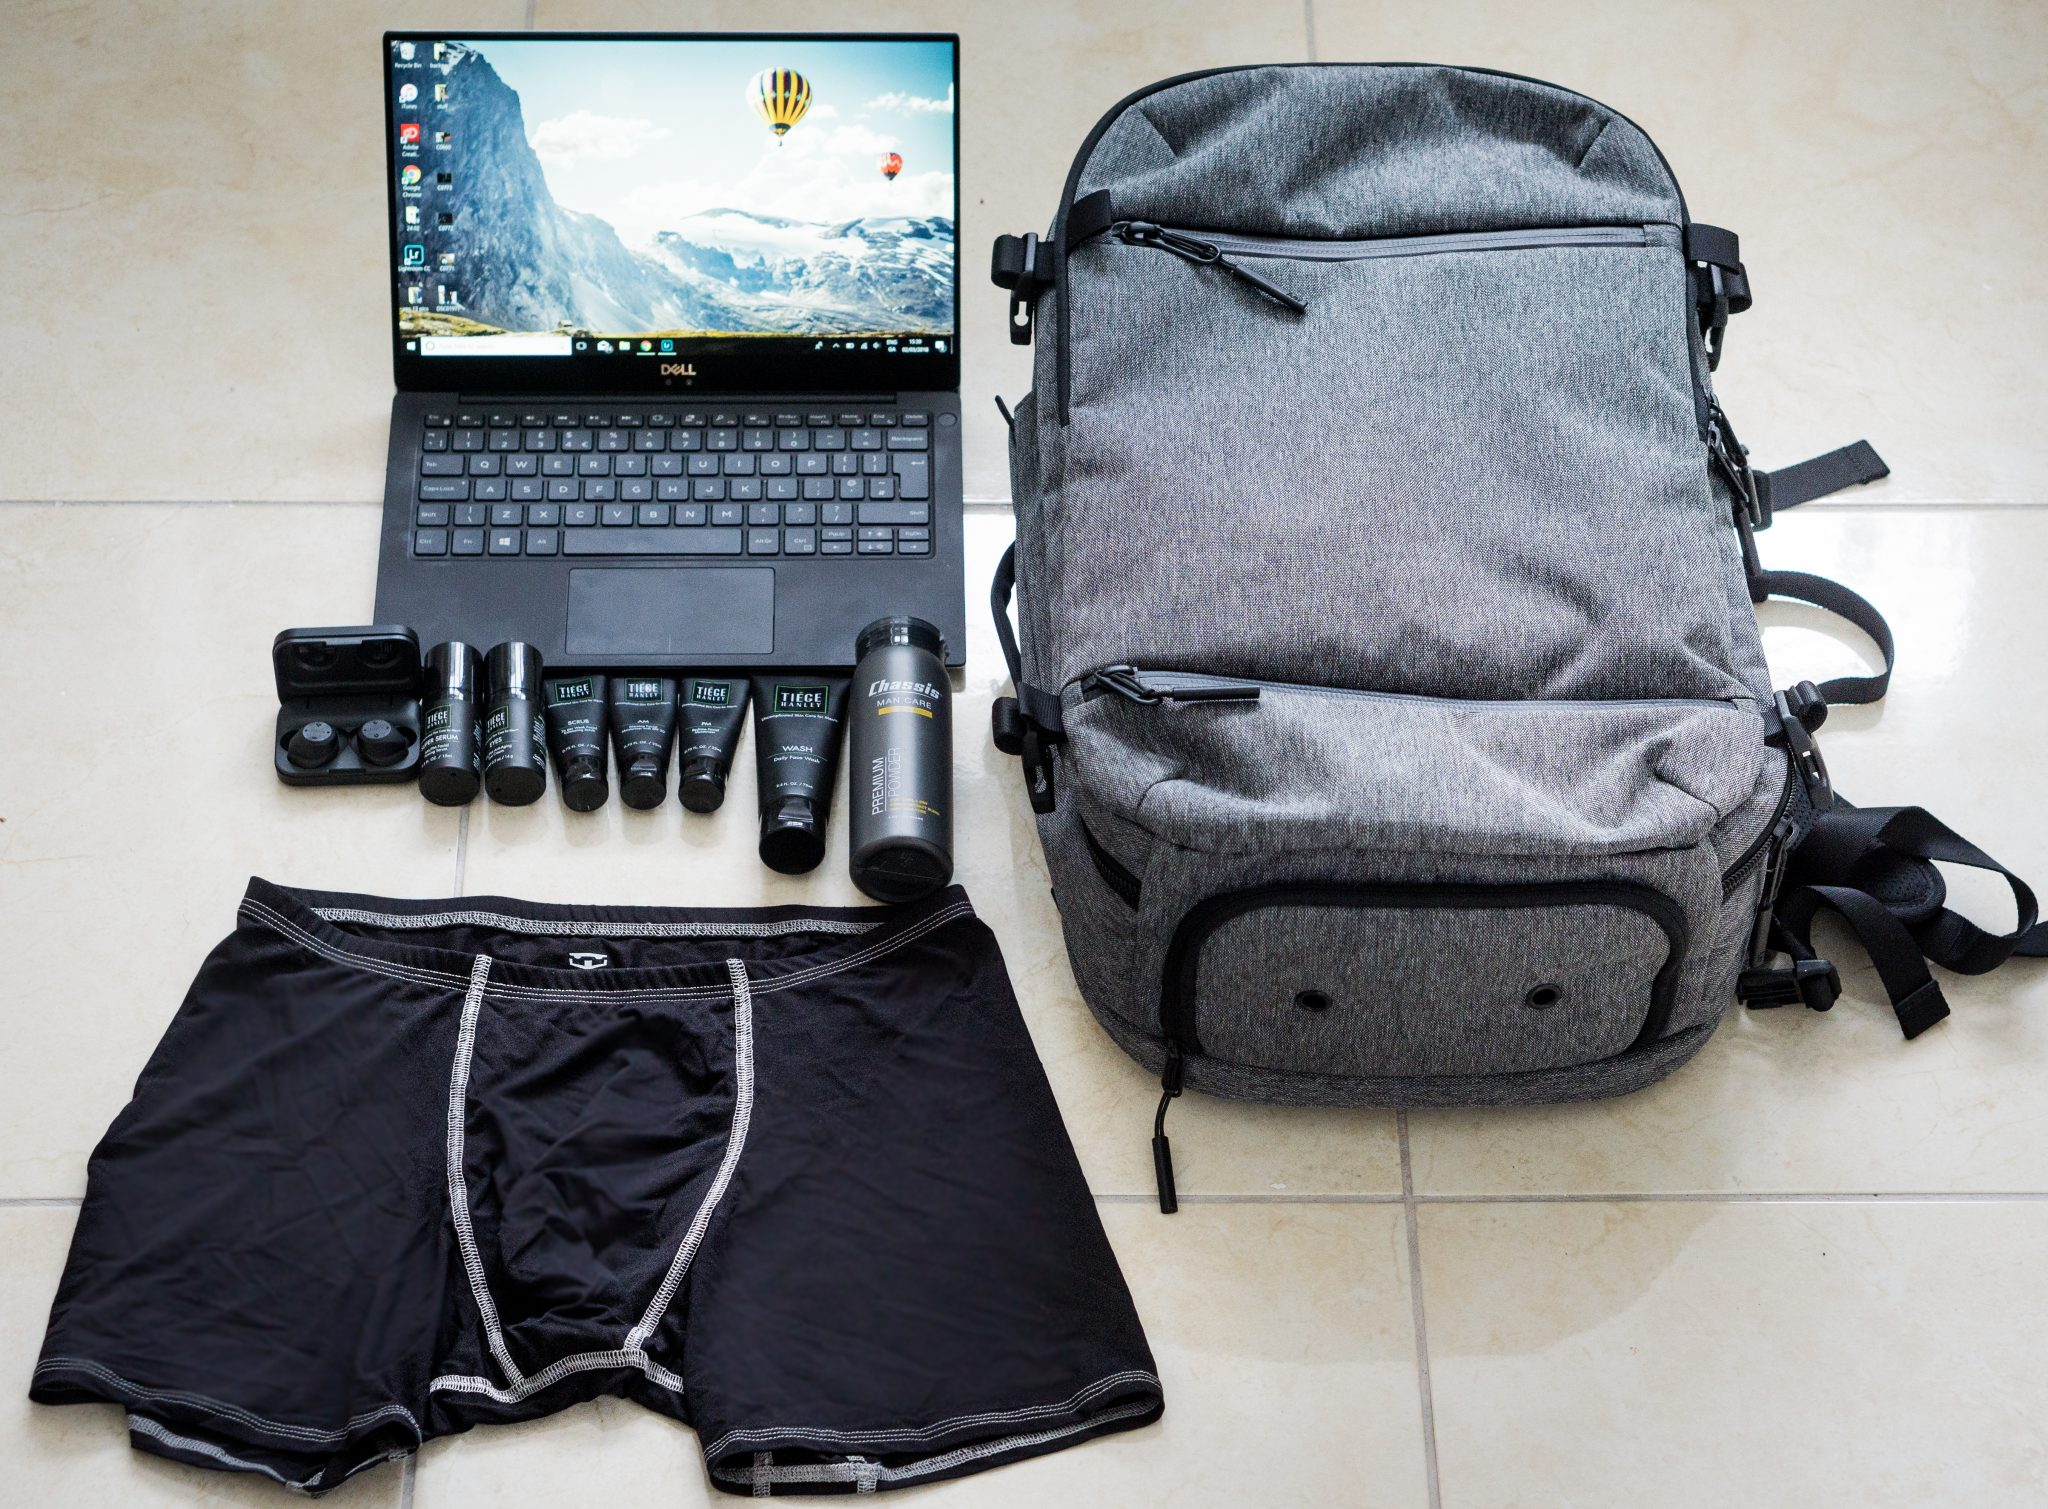 Five products that will make your travel experience better